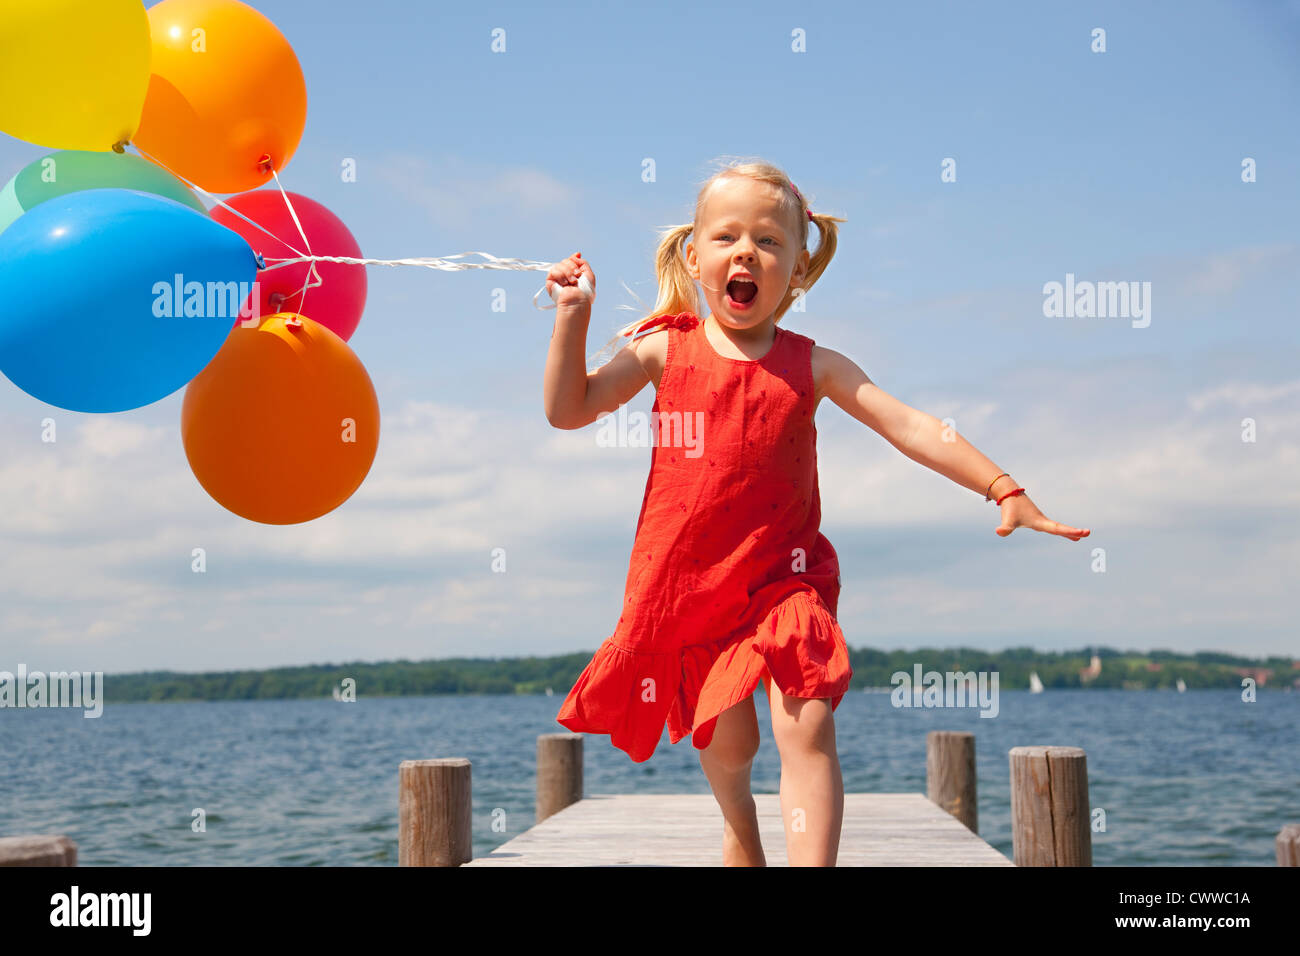 Girl holding balloons on wooden pier - Stock Image